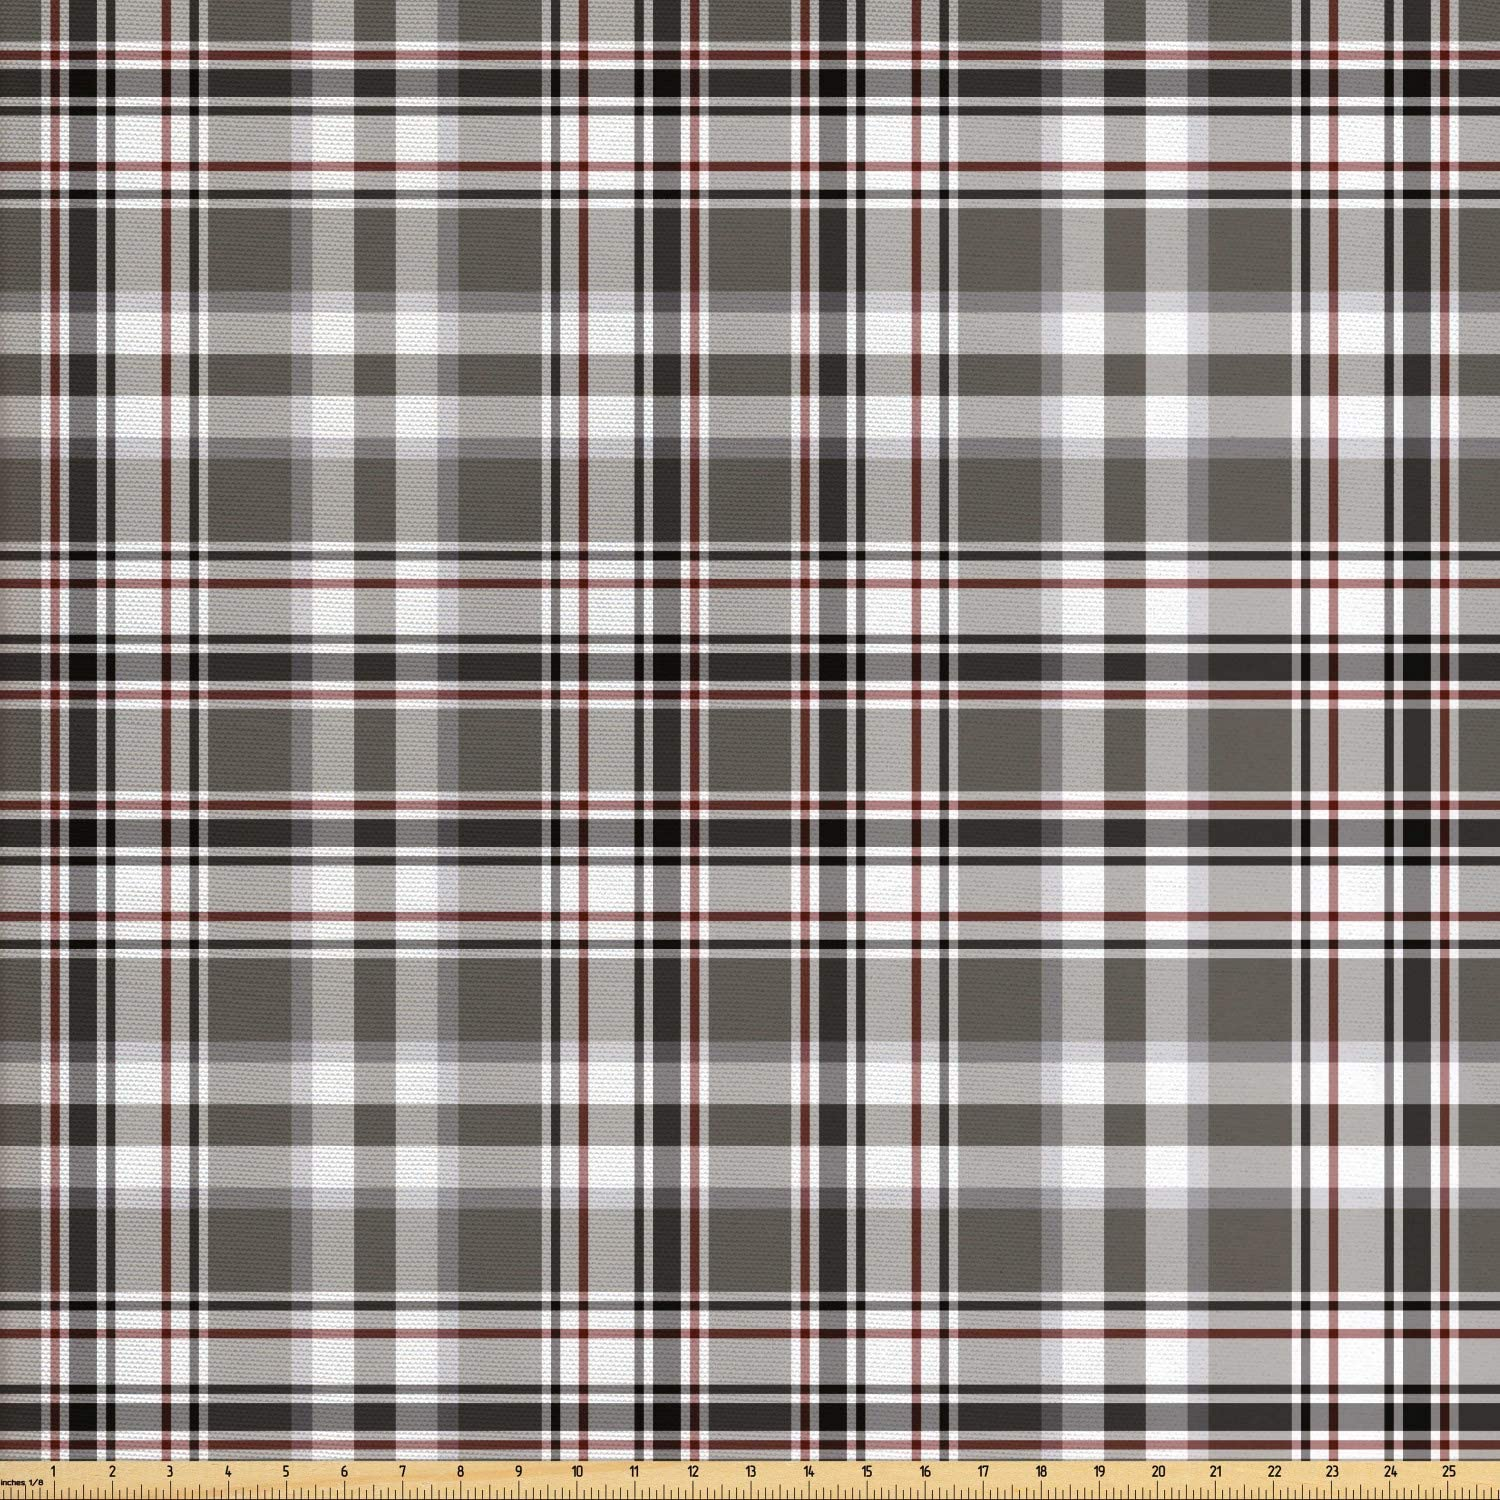 Lunarable Plaid Fabric by The Yard, Classic English Tartan Plaid Cells Stripes Scottish Geometric Traditional, Decorative Fabric for Upholstery and Home Accents, 1 Yard, Burgundy Black